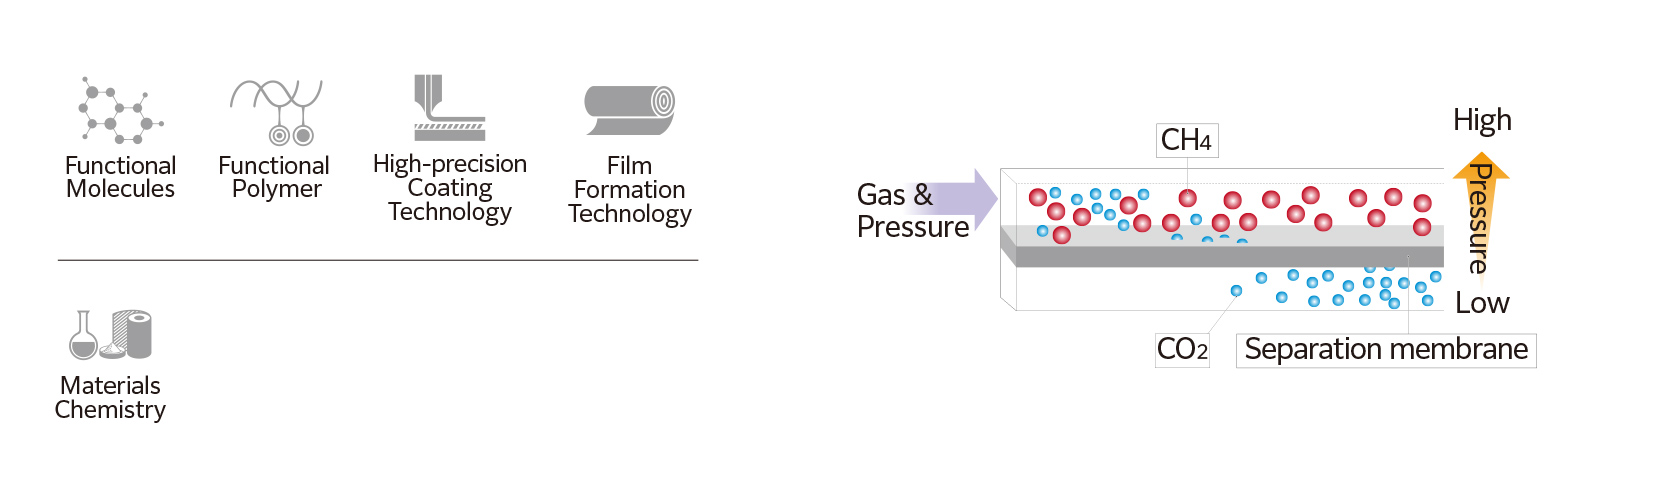 Functional Molecules Functional  Polymer High-precision Coating Technology Film Formation Technology